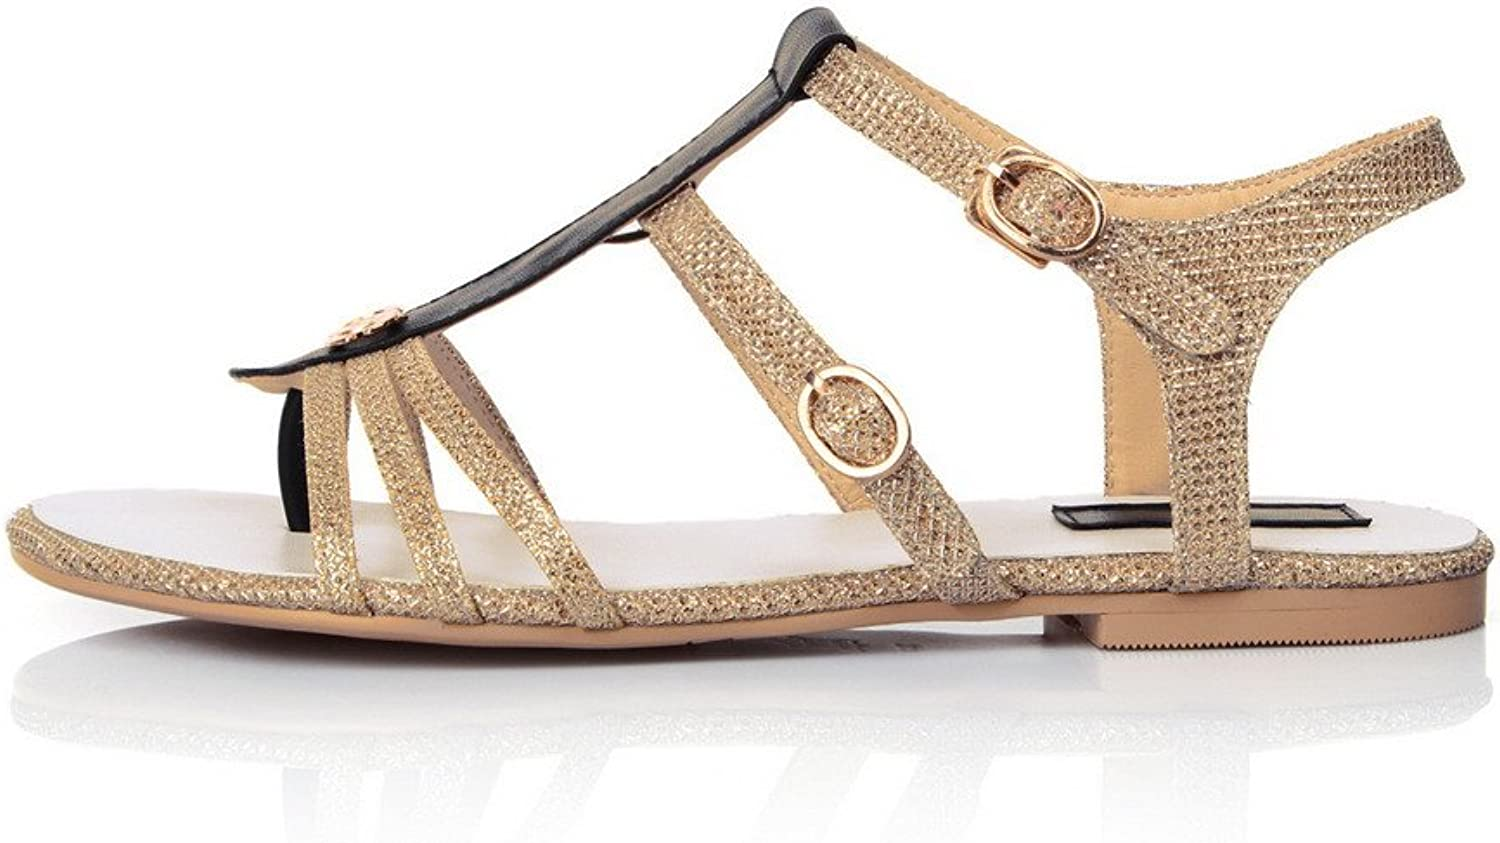 AmoonyFashion Women's Open Toe Flats Heel Cow Leather Soft Material Assorted colors Sandals, gold, 9.5 B(M) US